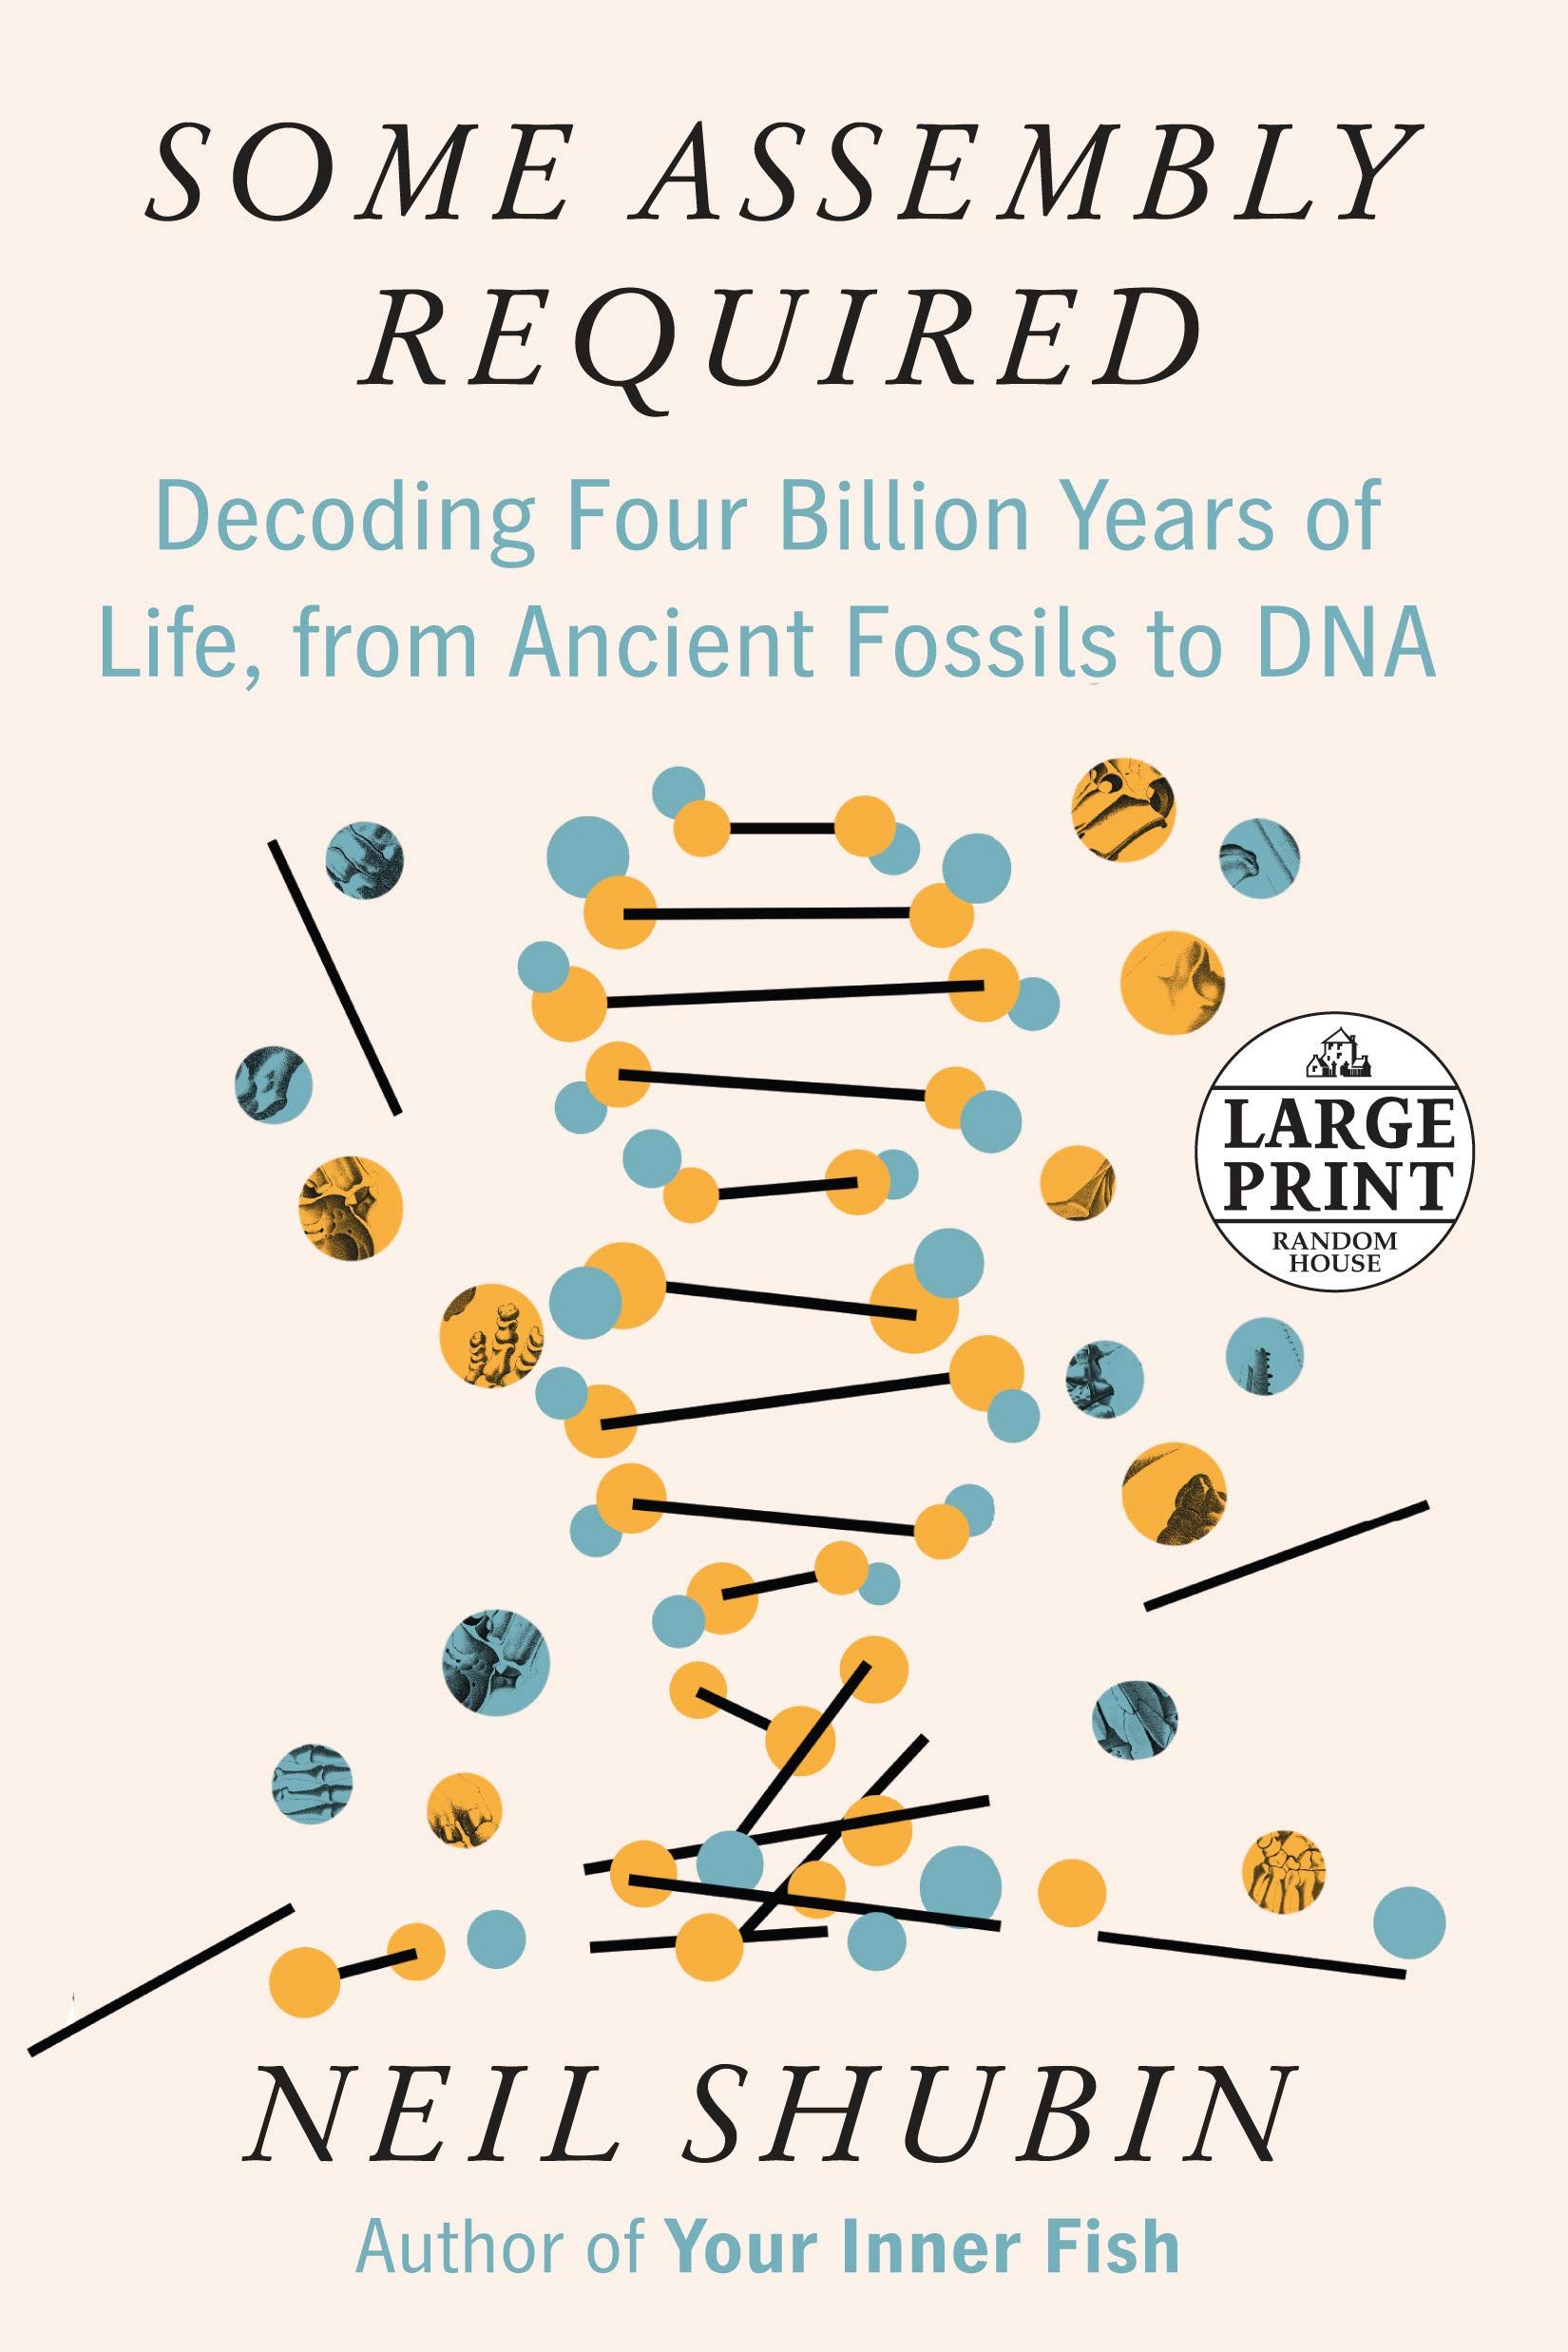 Image OfSome Assembly Required: Decoding Four Billion Years Of Life, From Ancient Fossils To DNA